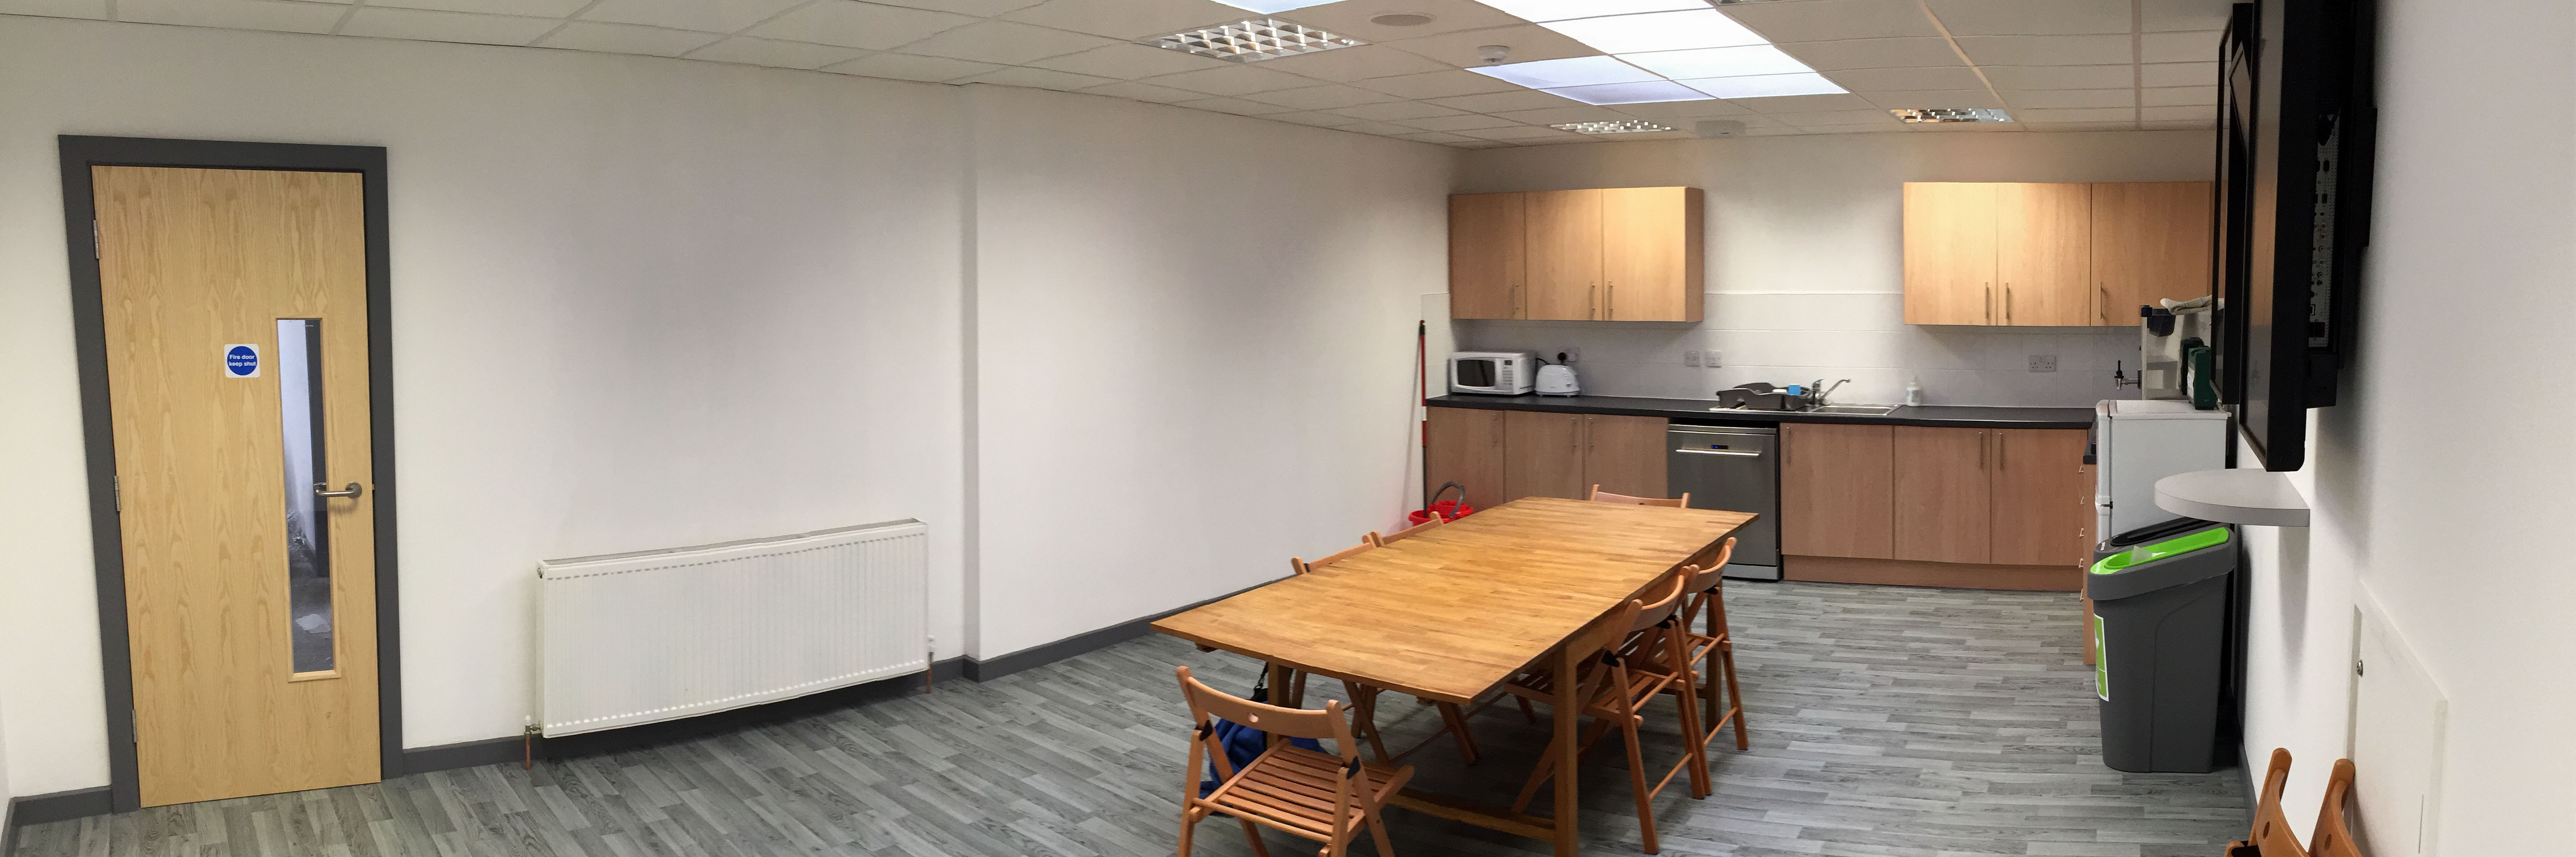 On Event Production Co. - We have moved home!